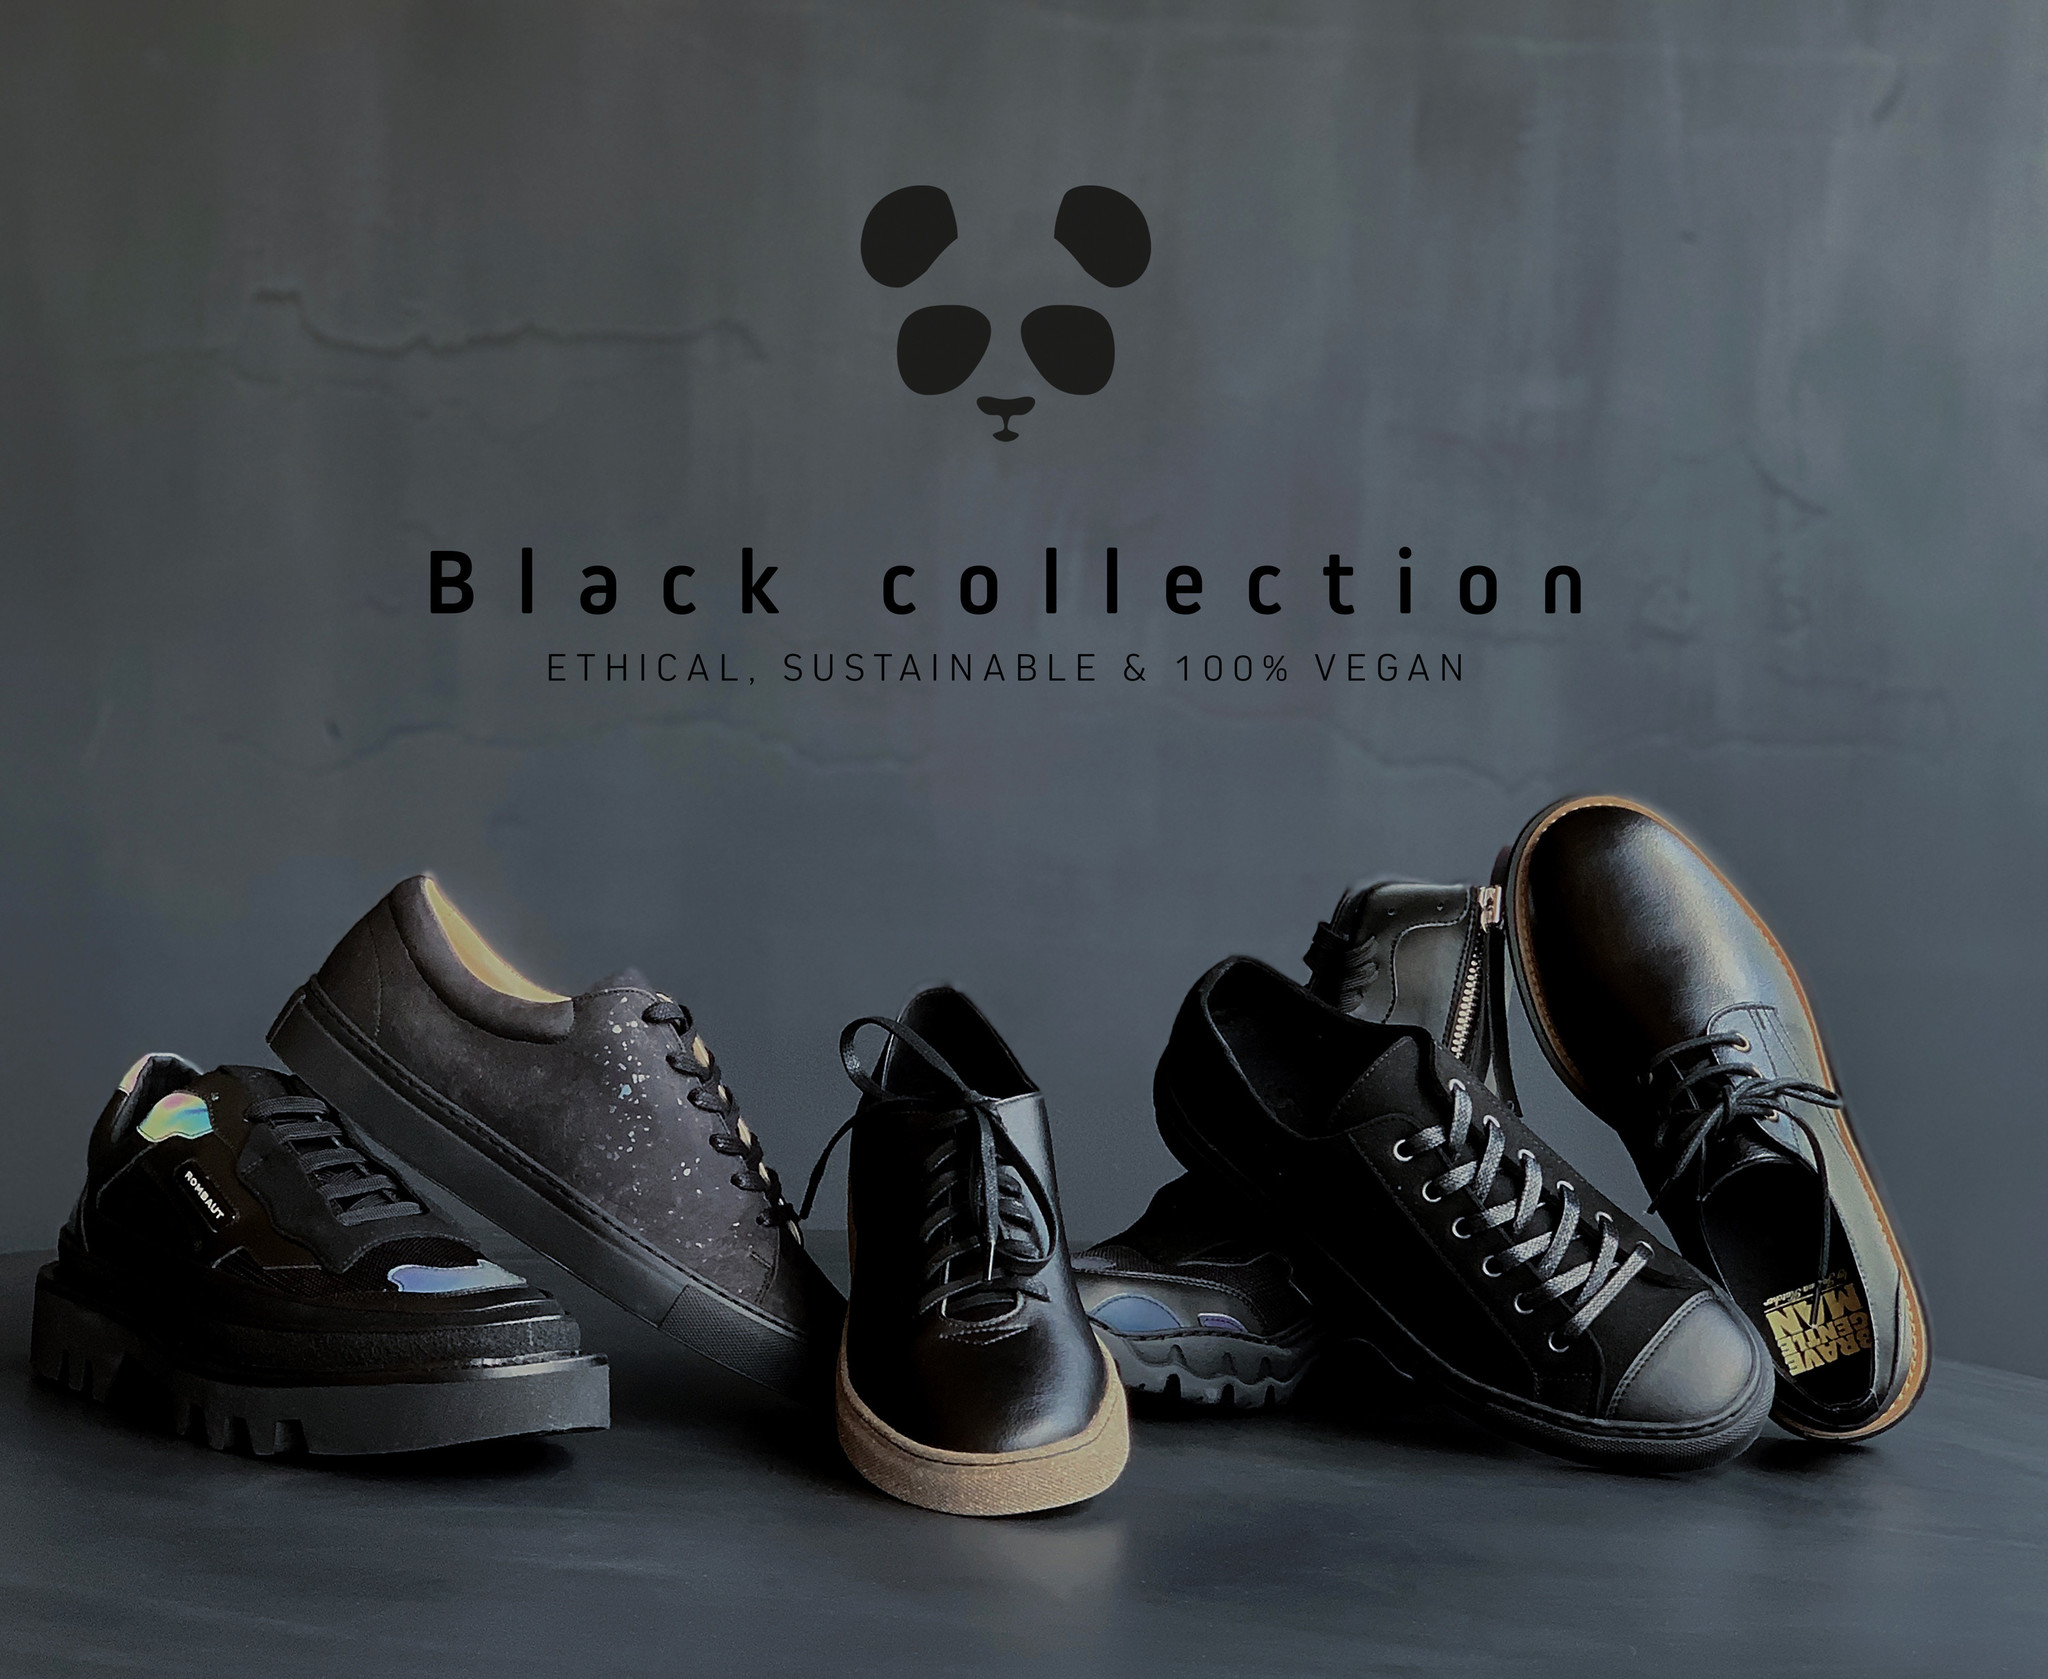 Black, sustainable, ethical and 100% vegan!